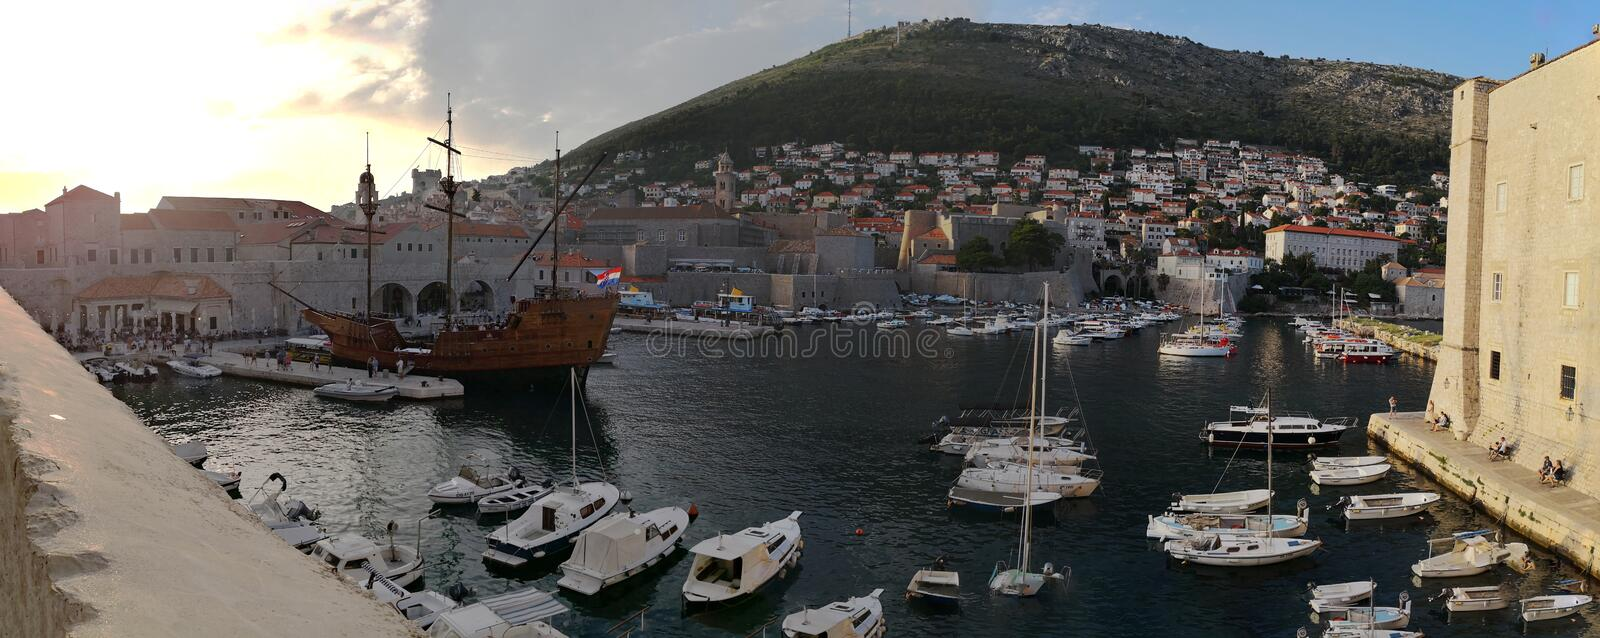 Dubrovnik, Dalmatia/Croatia; 06/04/2018: a panoramic view of the old port of Dubrovnik old town royalty free stock images